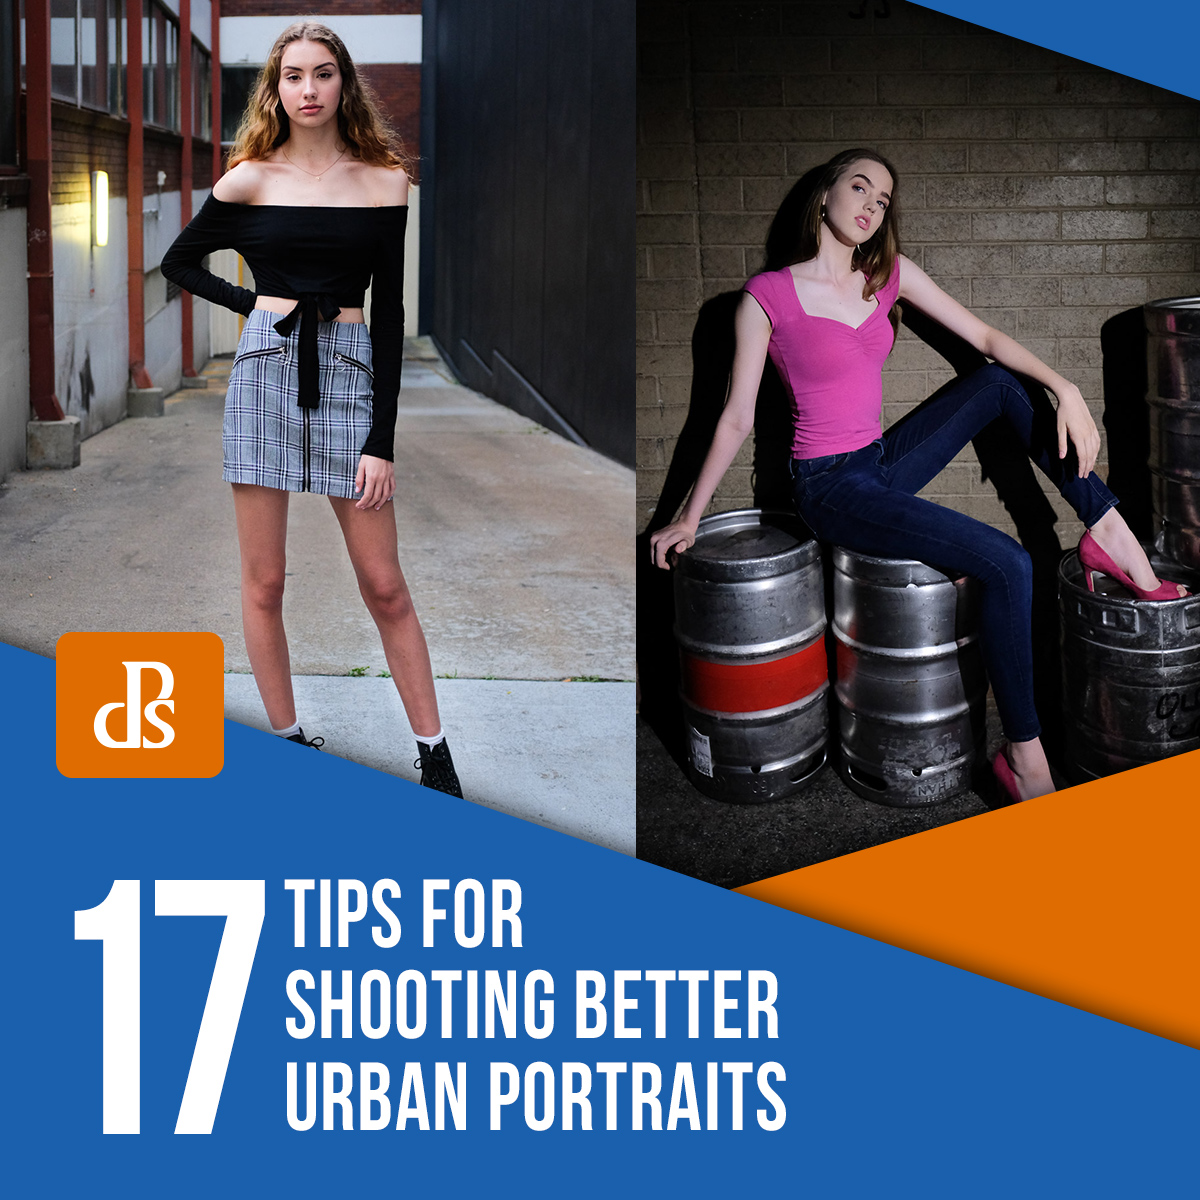 tips-for-shooting-better-urban-portraits